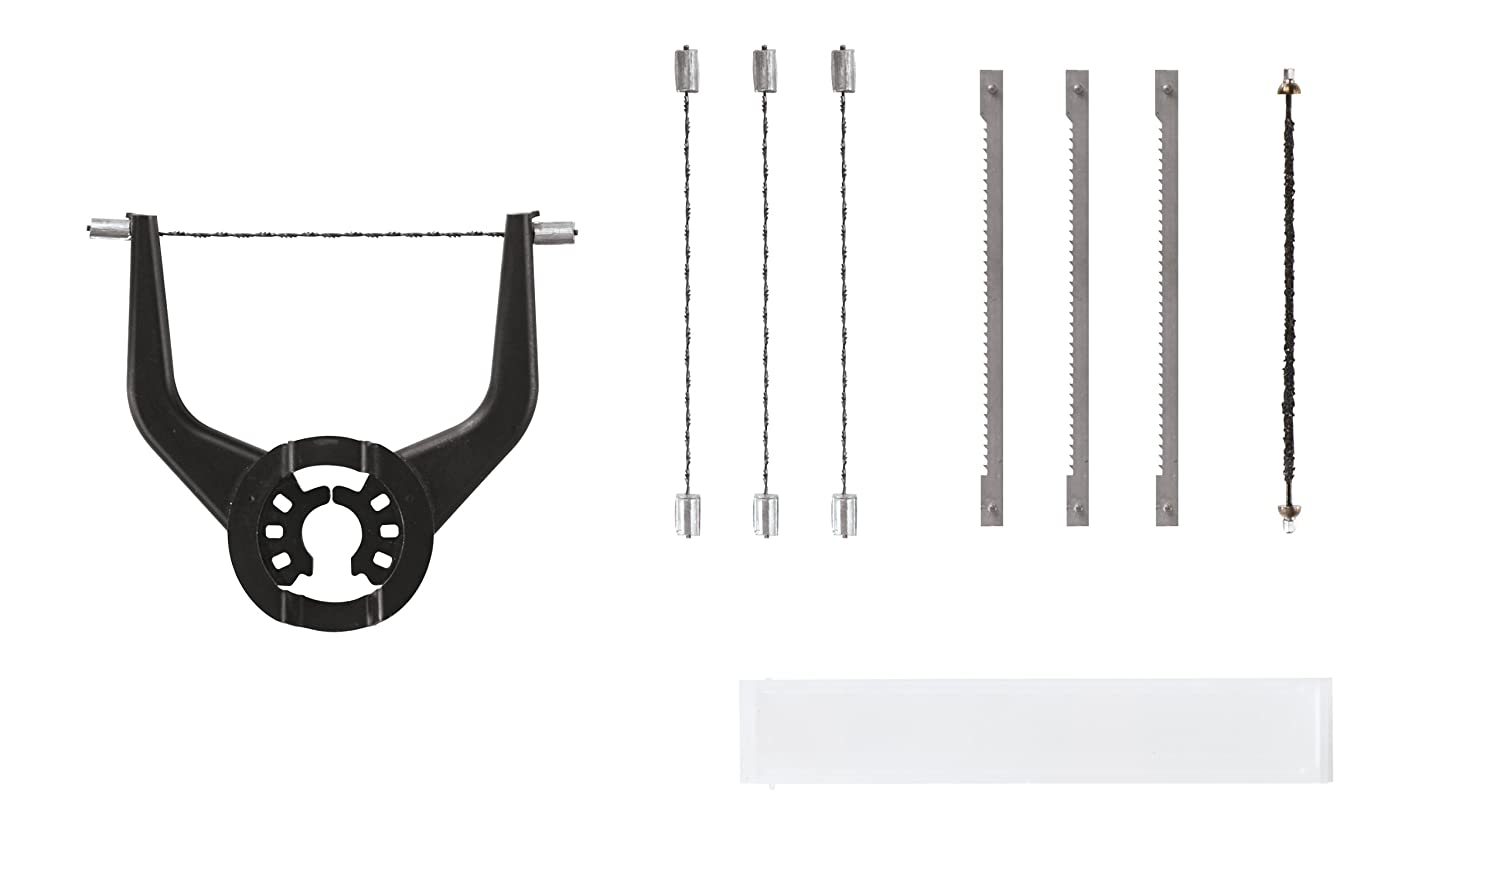 Dremel MM720 Yoke Cutting Accessory Kit